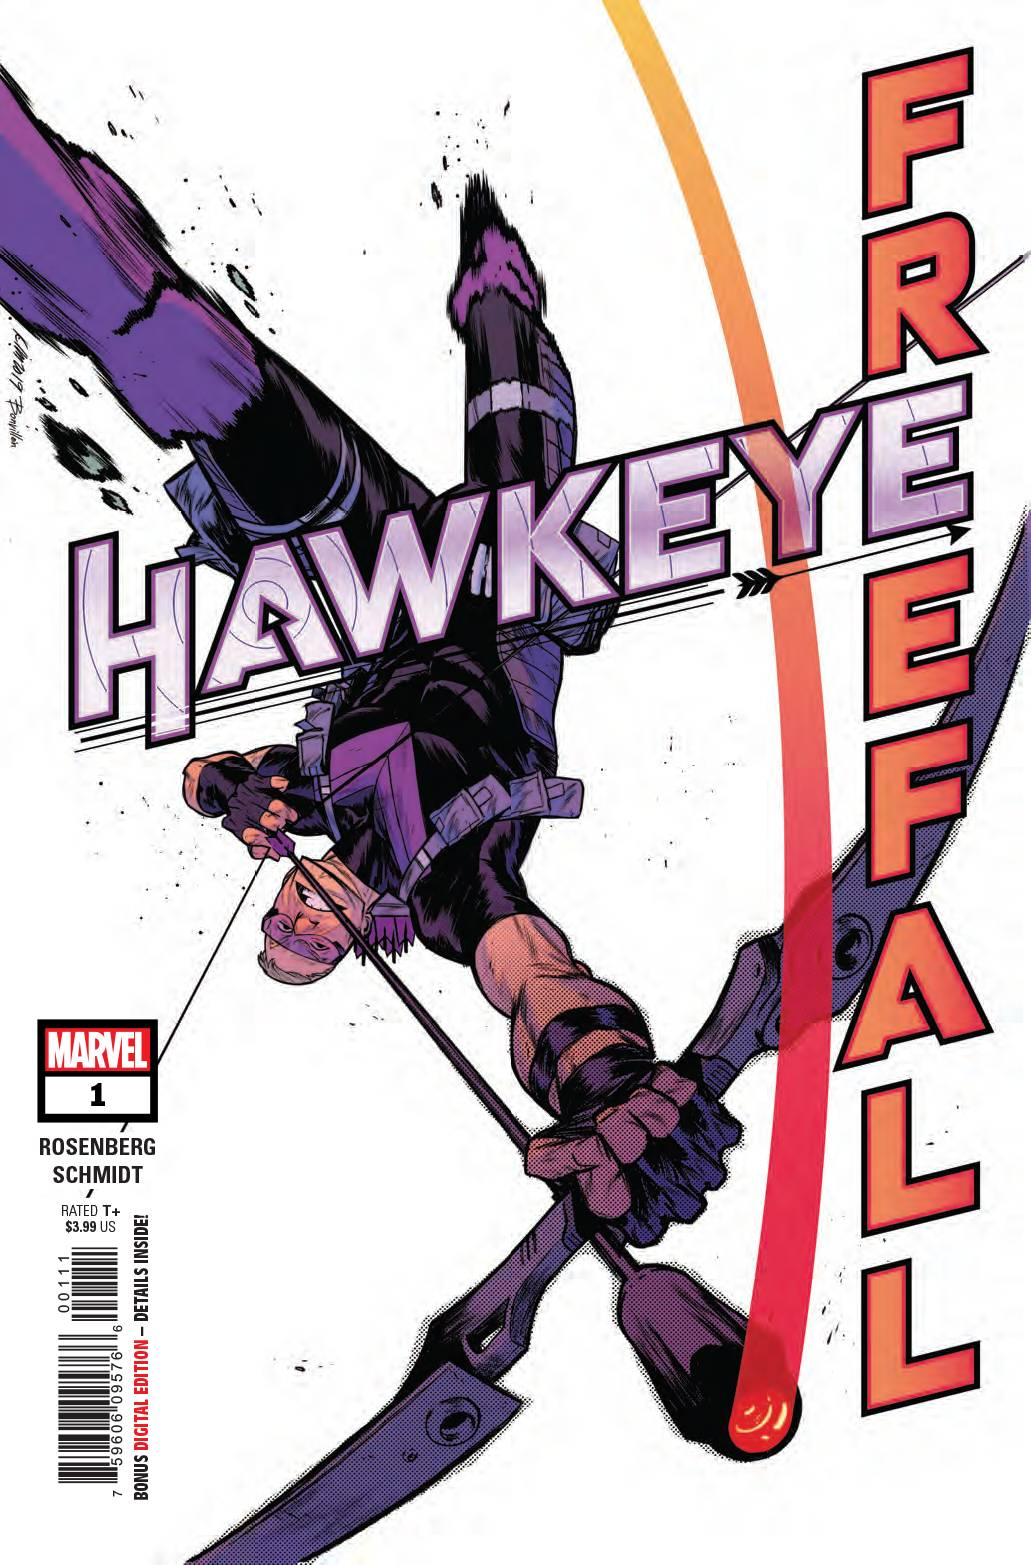 01/01/2020 HAWKEYE FREEFALL #1 (Free with $10 Purchase.  Limited 1 Per Order)